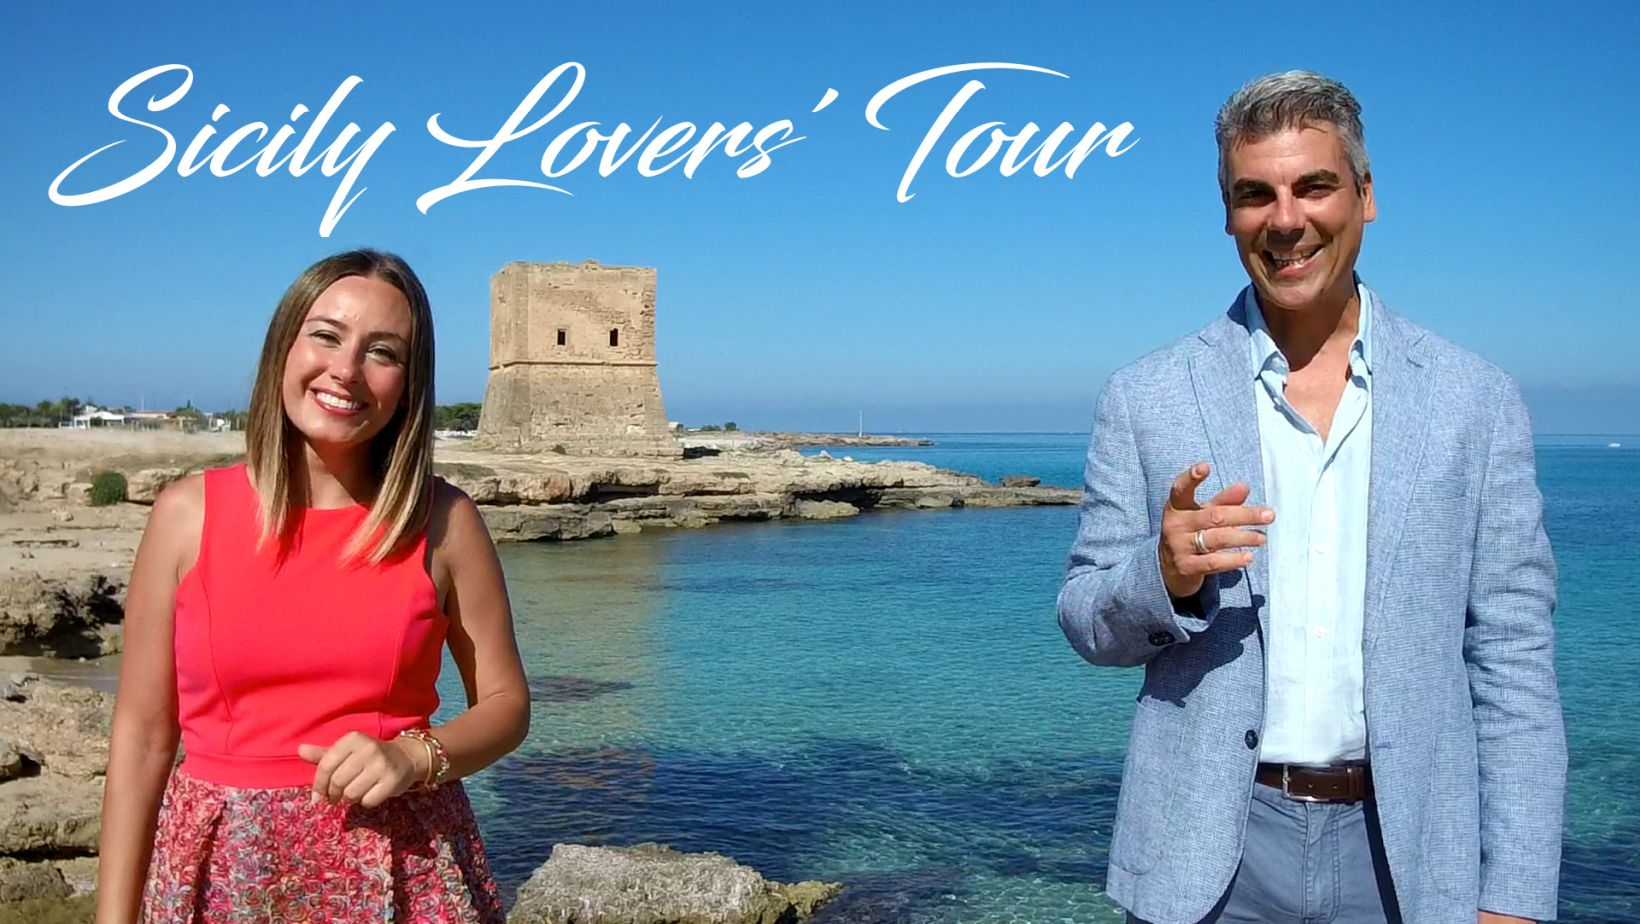 travel packages to sicily- small group tour of sicily - visit sicily